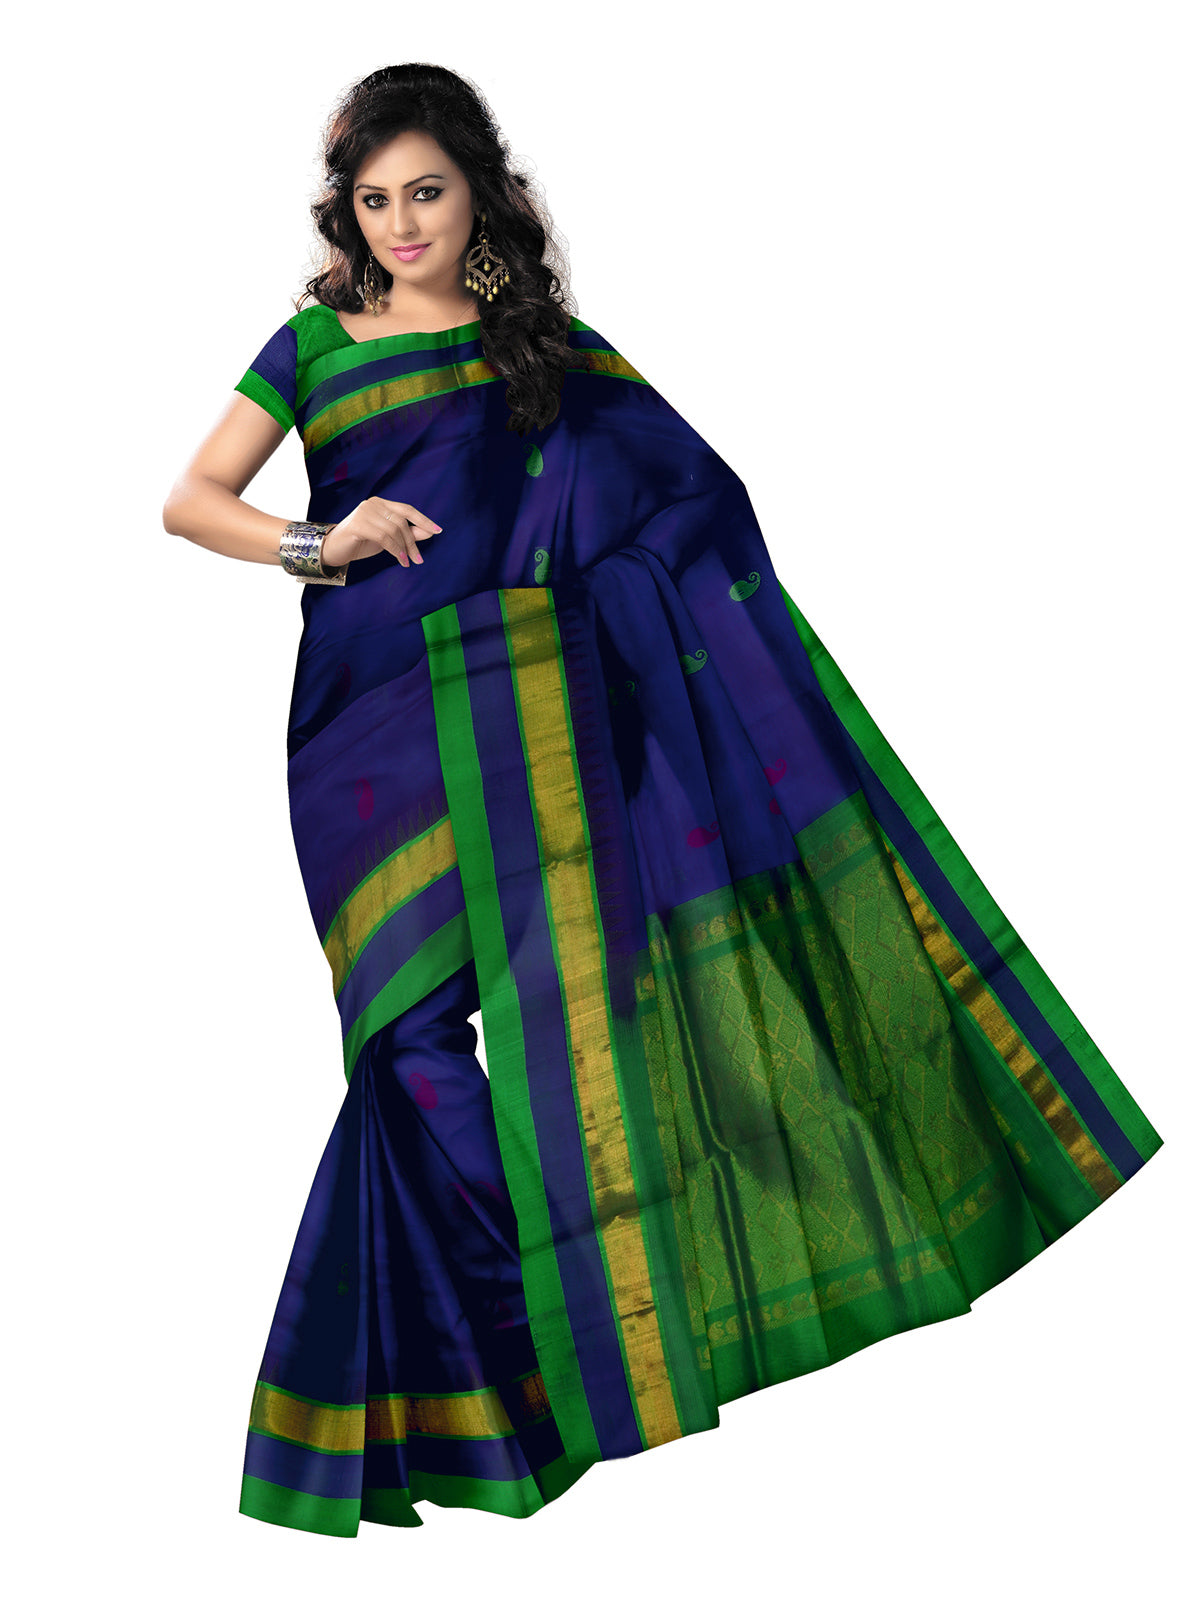 Kuppadam Silk Cotton Saree - Blue and Parrot Green with mango butta and temple silk border for Rs.Rs. 6545.00 | Silk Cotton Sarees by Prashanti Sarees